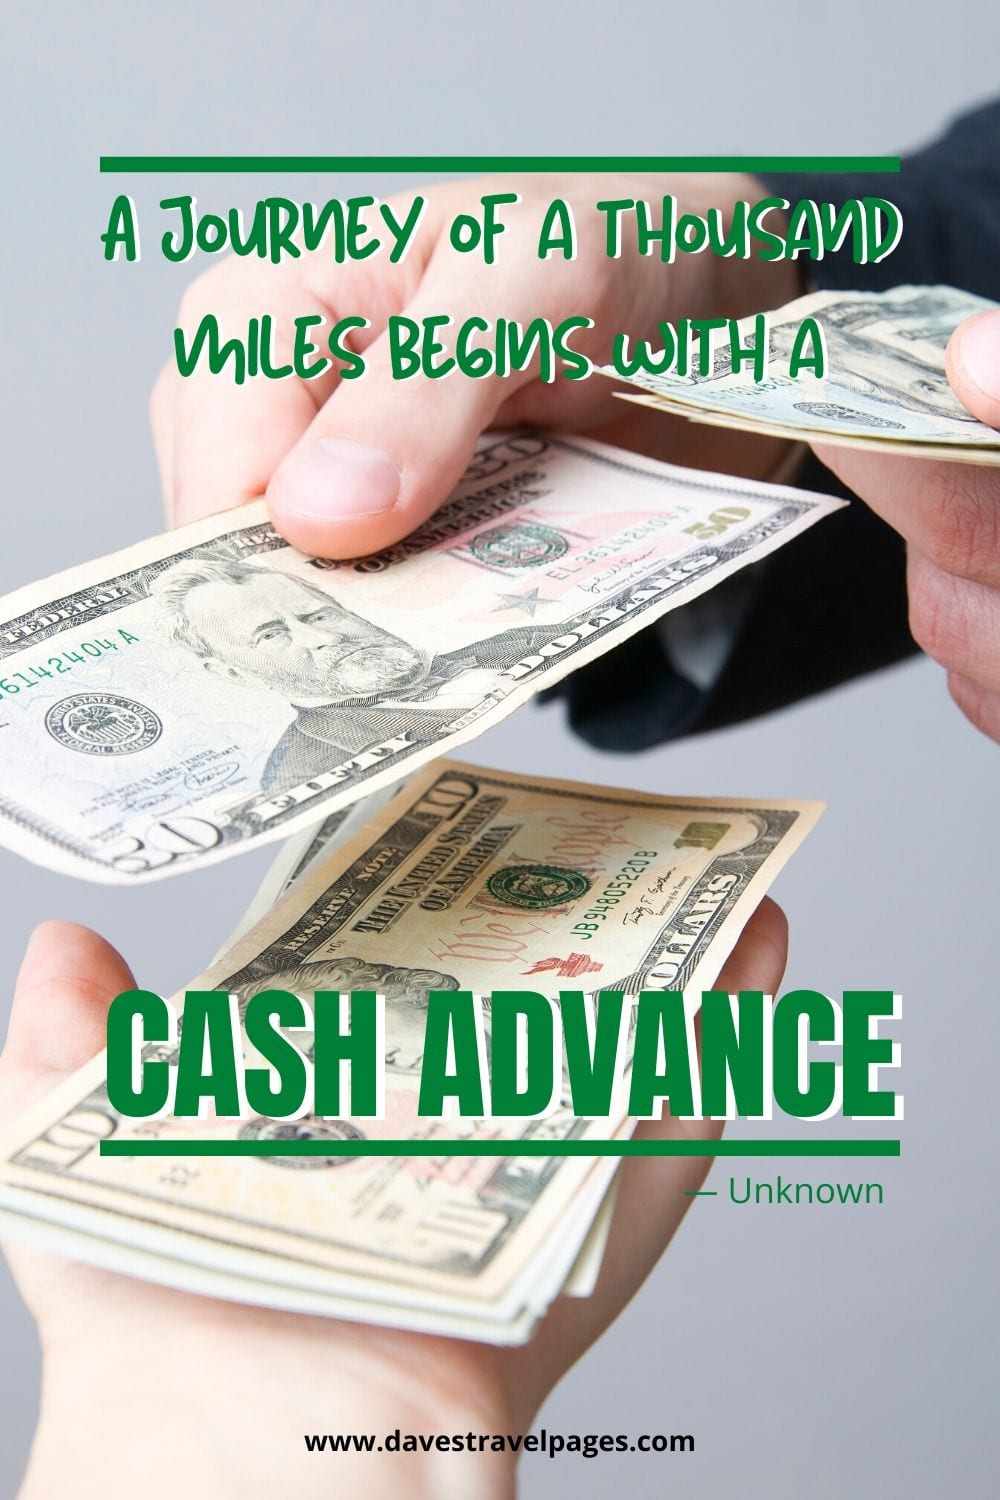 """Best travel quotes in the world: """"A journey of a thousand miles begins with a cash advance."""" — Unknown"""